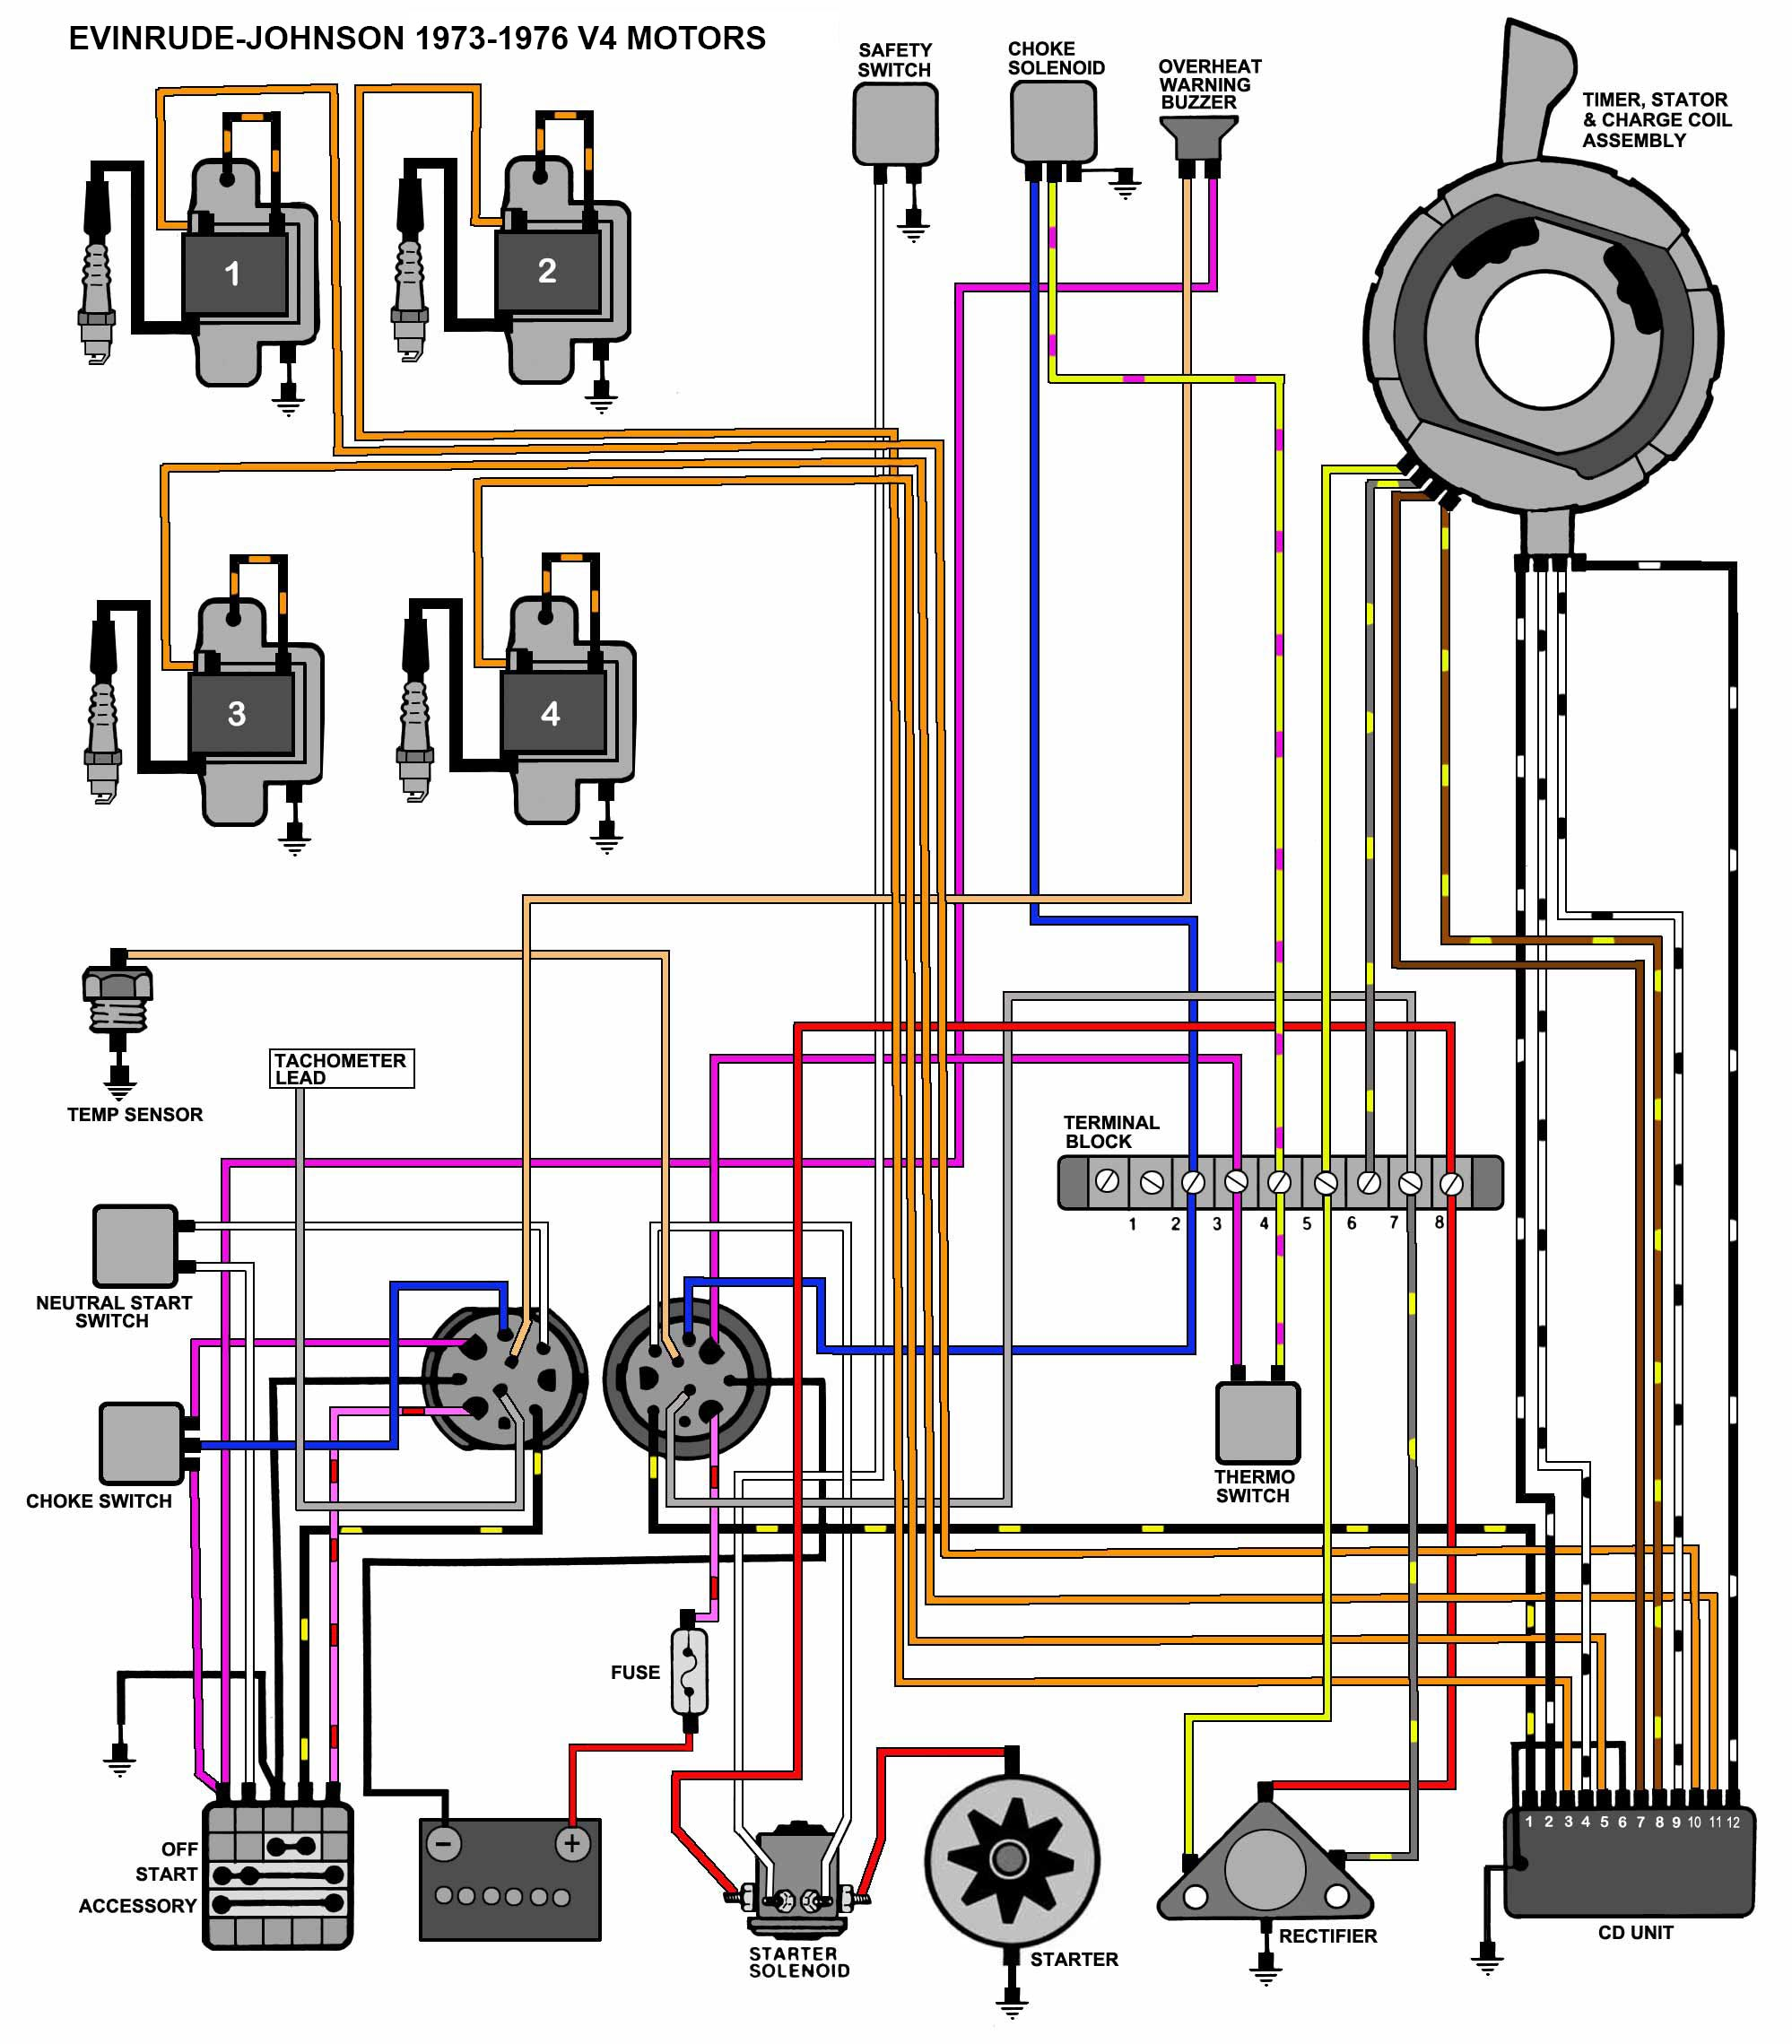 6 5 hp mercury thunderbolt 4 cyl engine diagram wiring diagramwiring diagram for a 1971 mercury 115 schema wiring diagram 6 5 hp mercury thunderbolt 4 cyl engine diagram